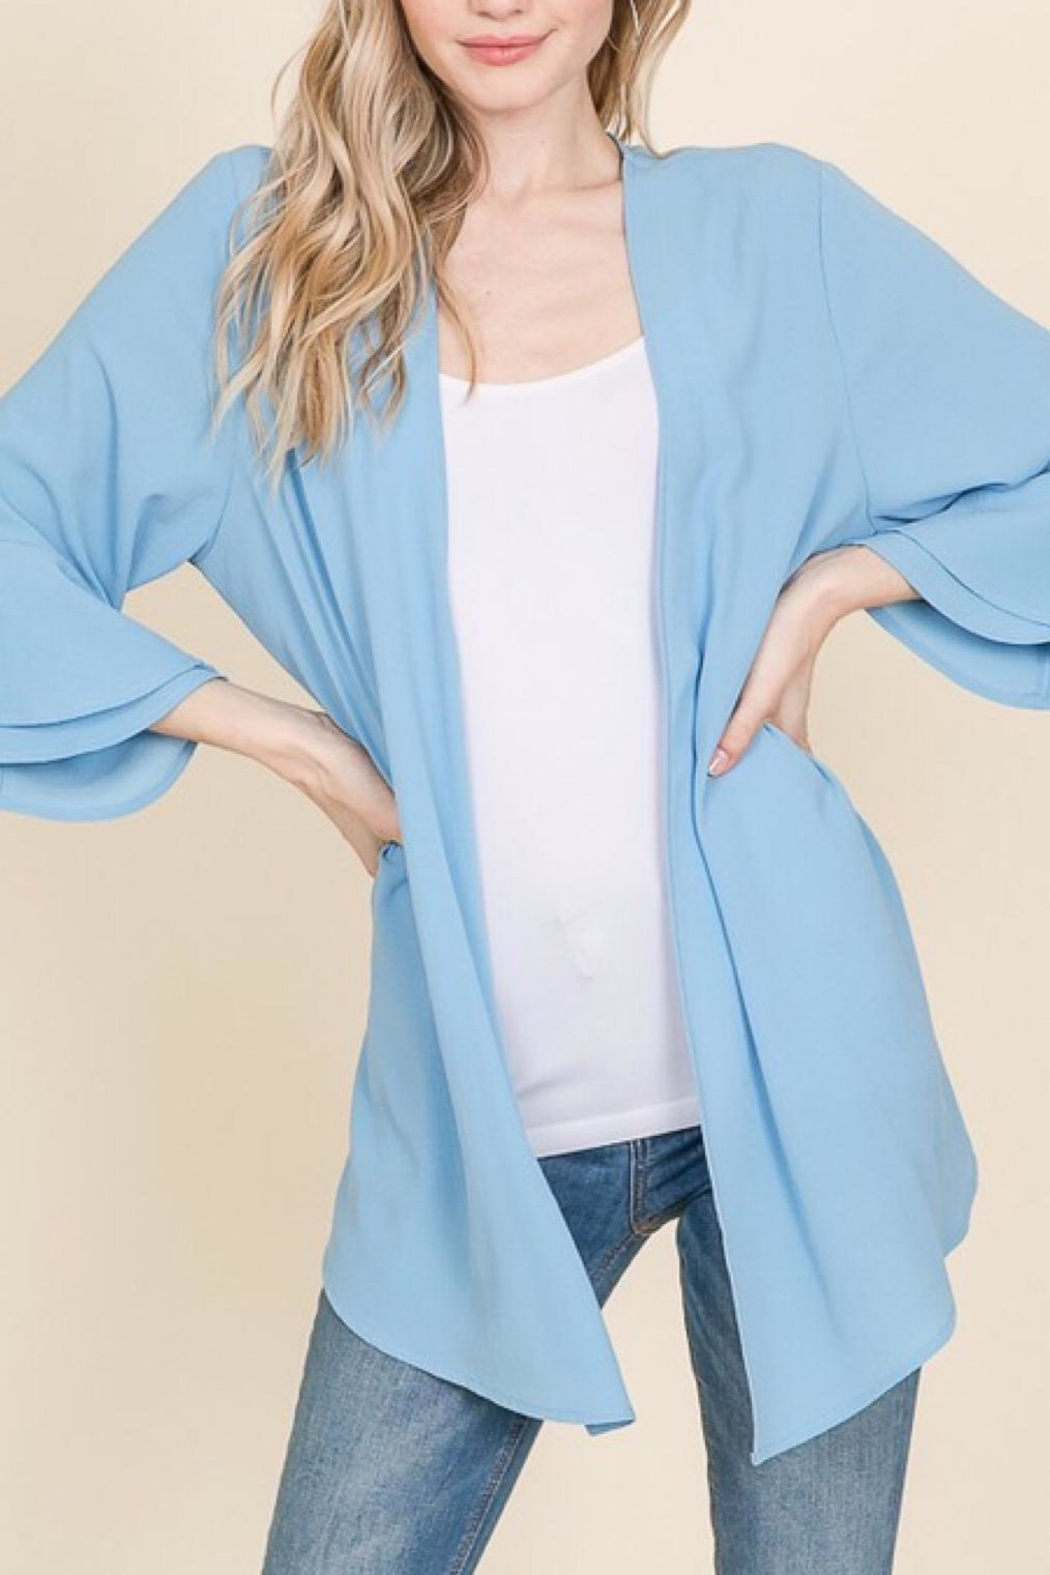 Racheal Misty Blue Cardigan - Front Cropped Image